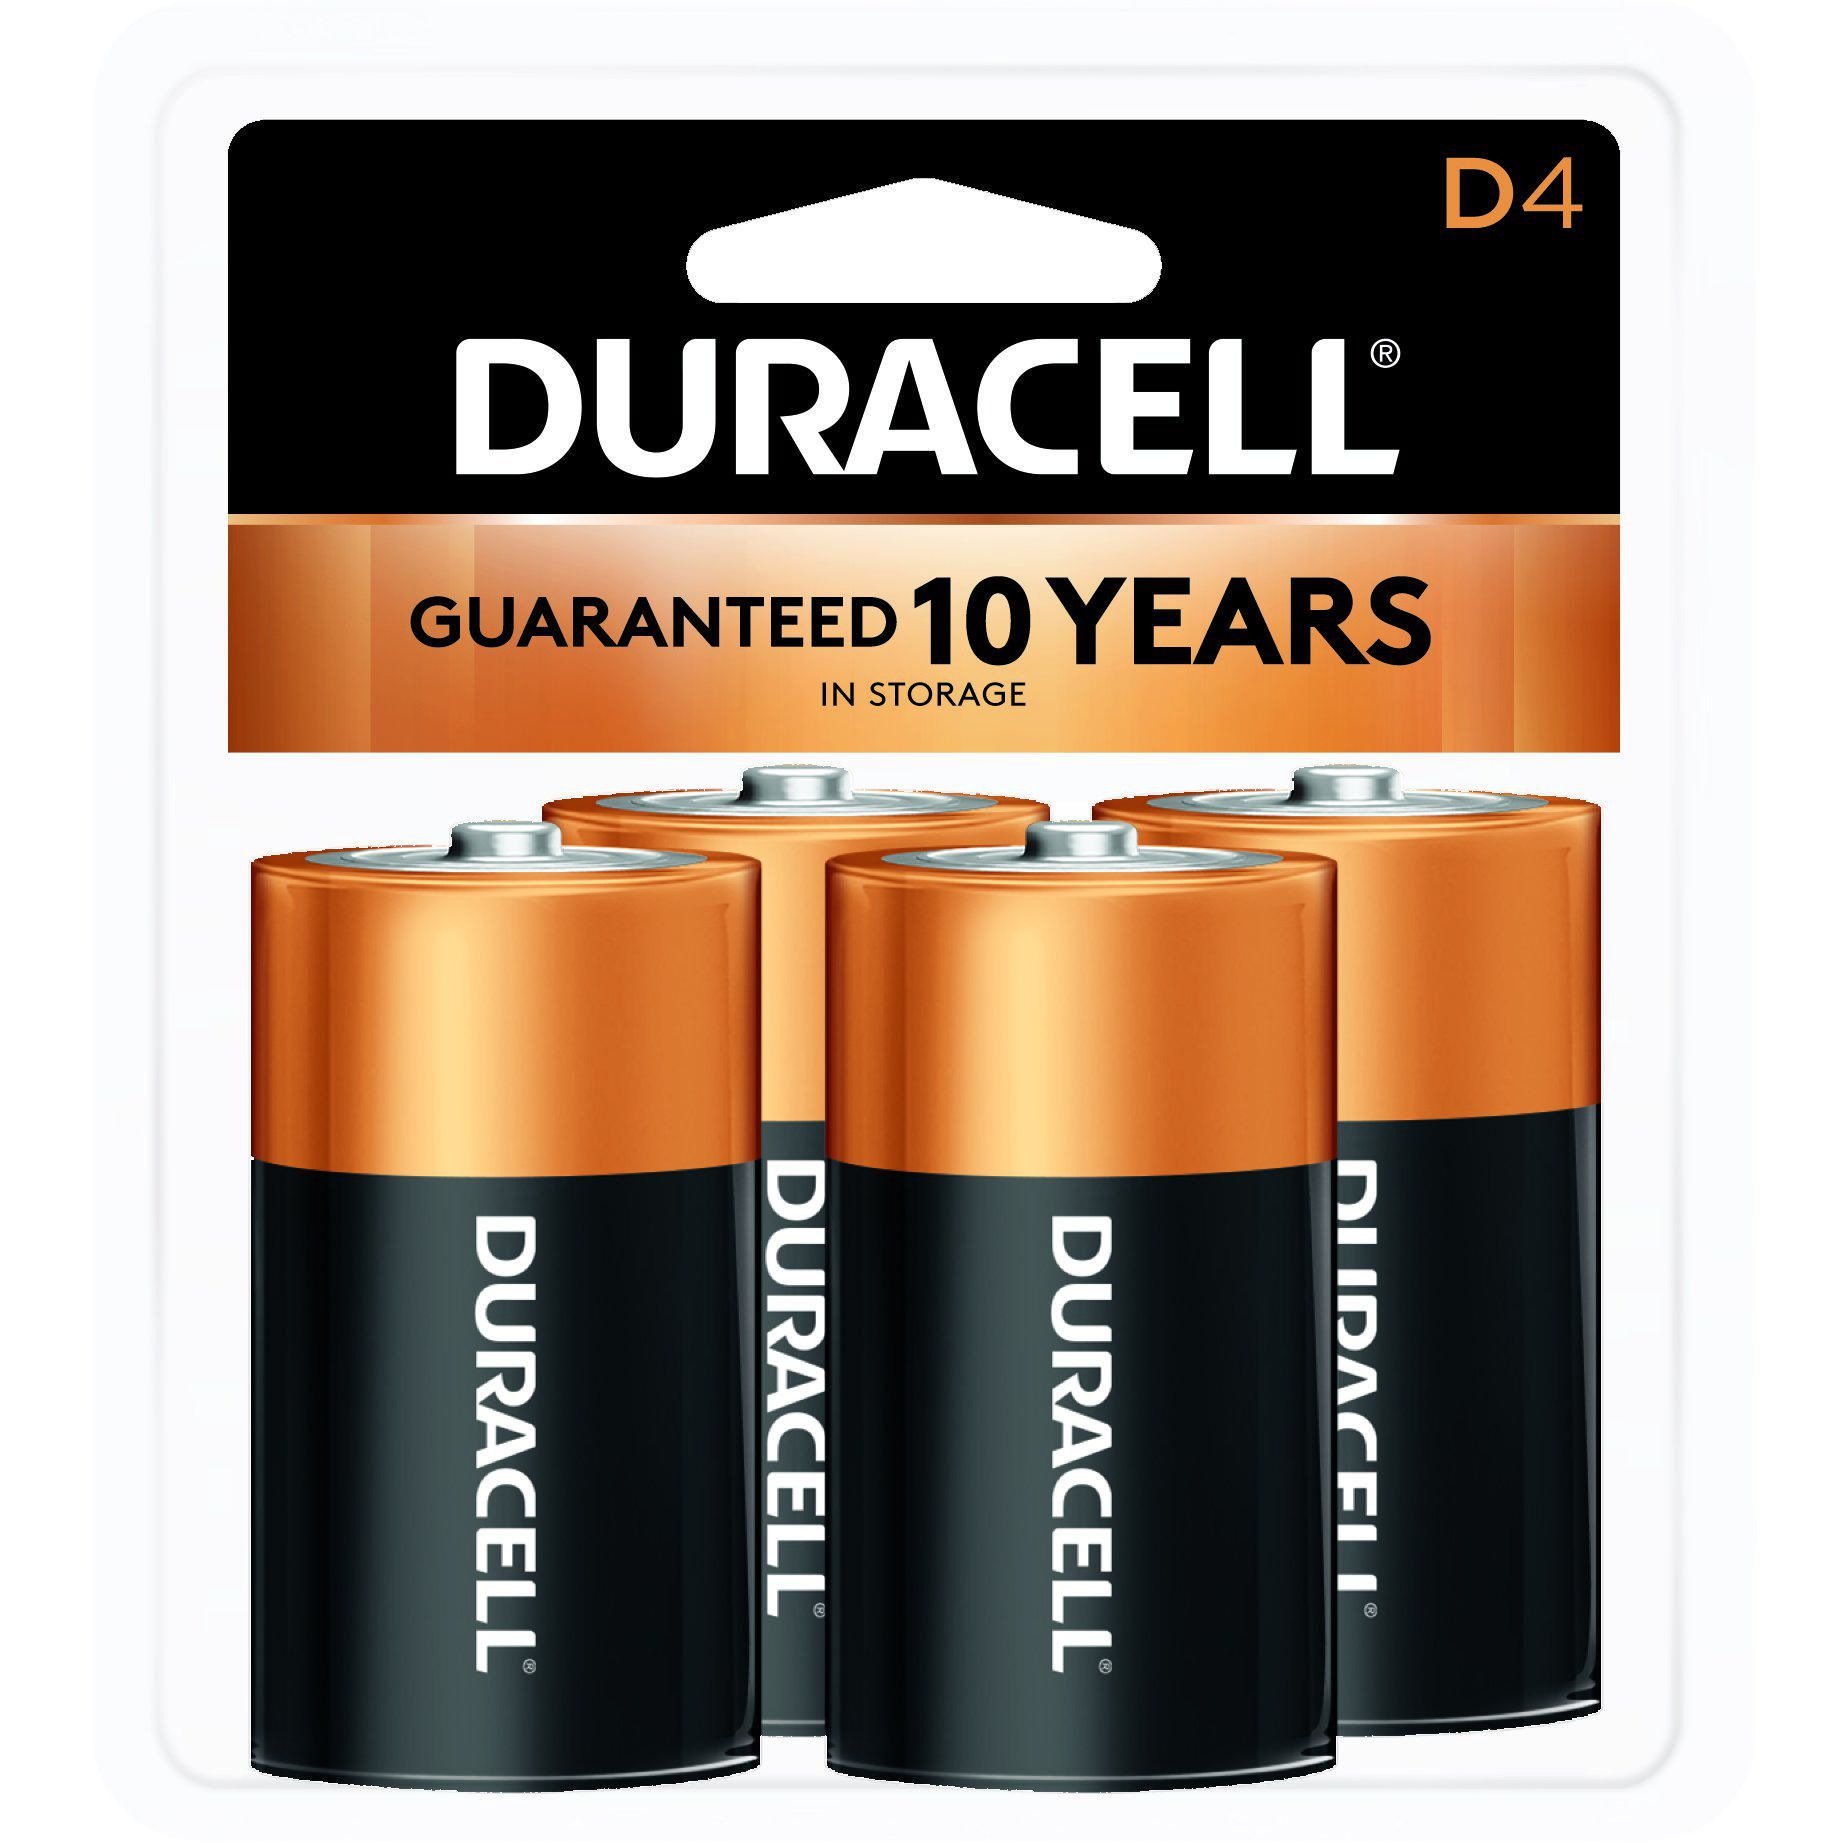 Download Https Truimg Toysrus Com Product Images A31a9d18 Zoom Jpg Duracell Duracell Batteries Alkaline Battery PSD Mockup Templates